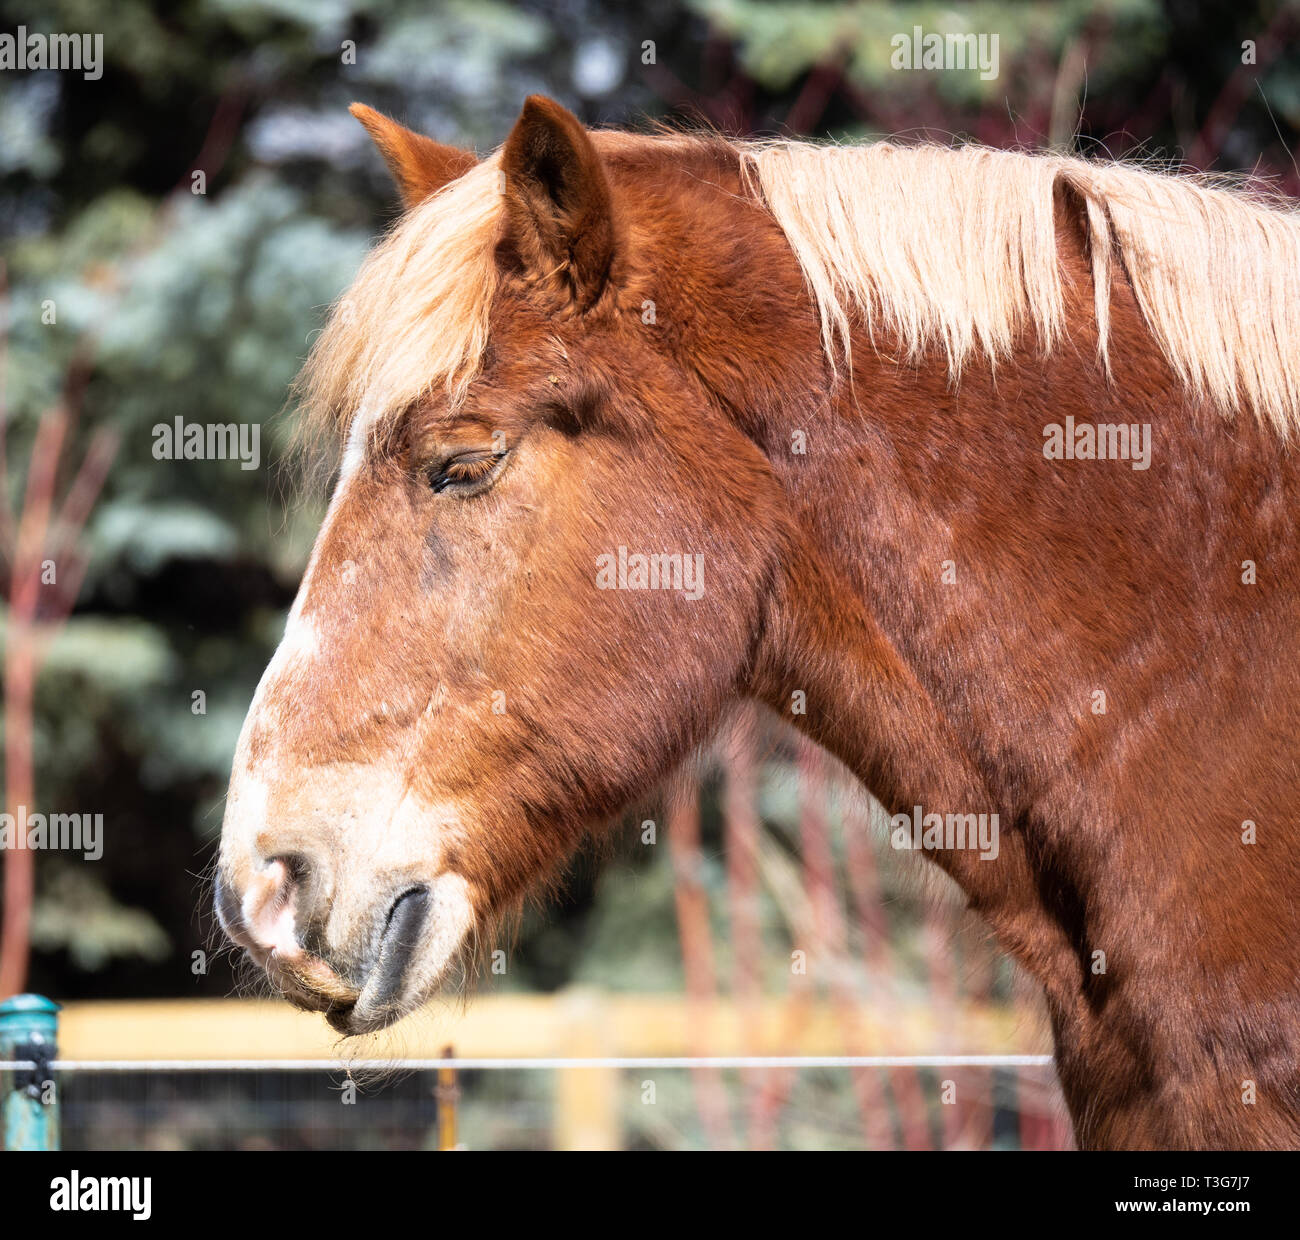 A Belgian Draft Horse S Head And Neck Photographed In Profile With A Shallow Depth Of Field Stock Photo Alamy